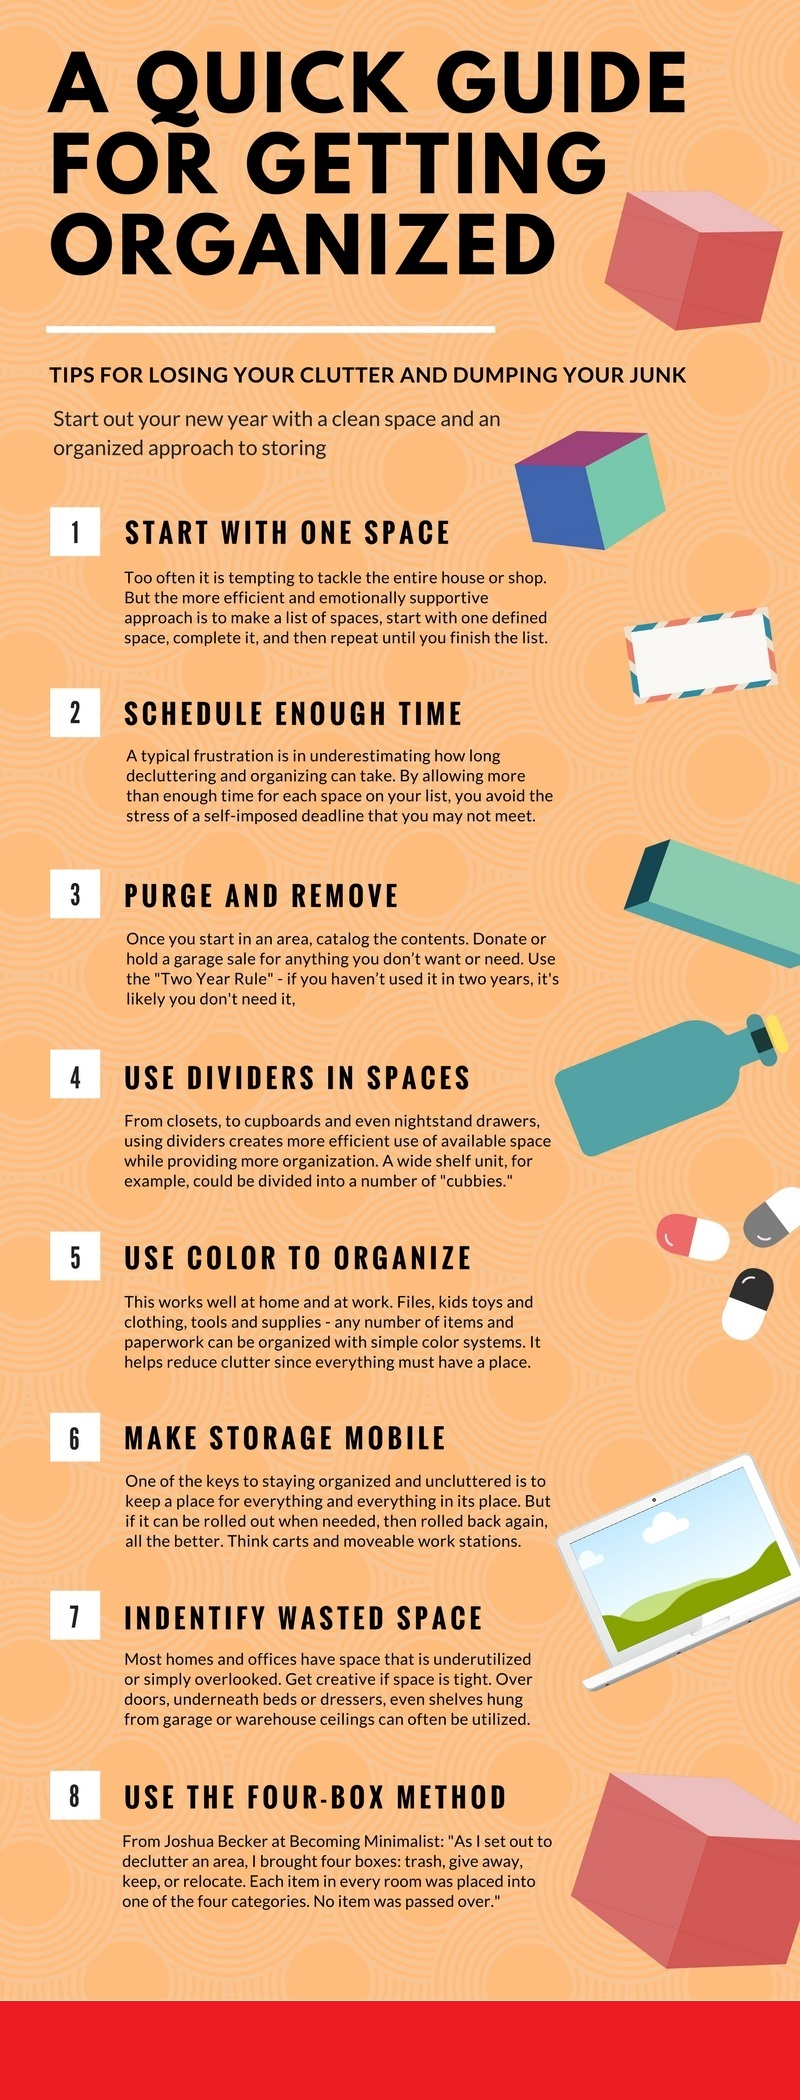 guide_to_getting_organized